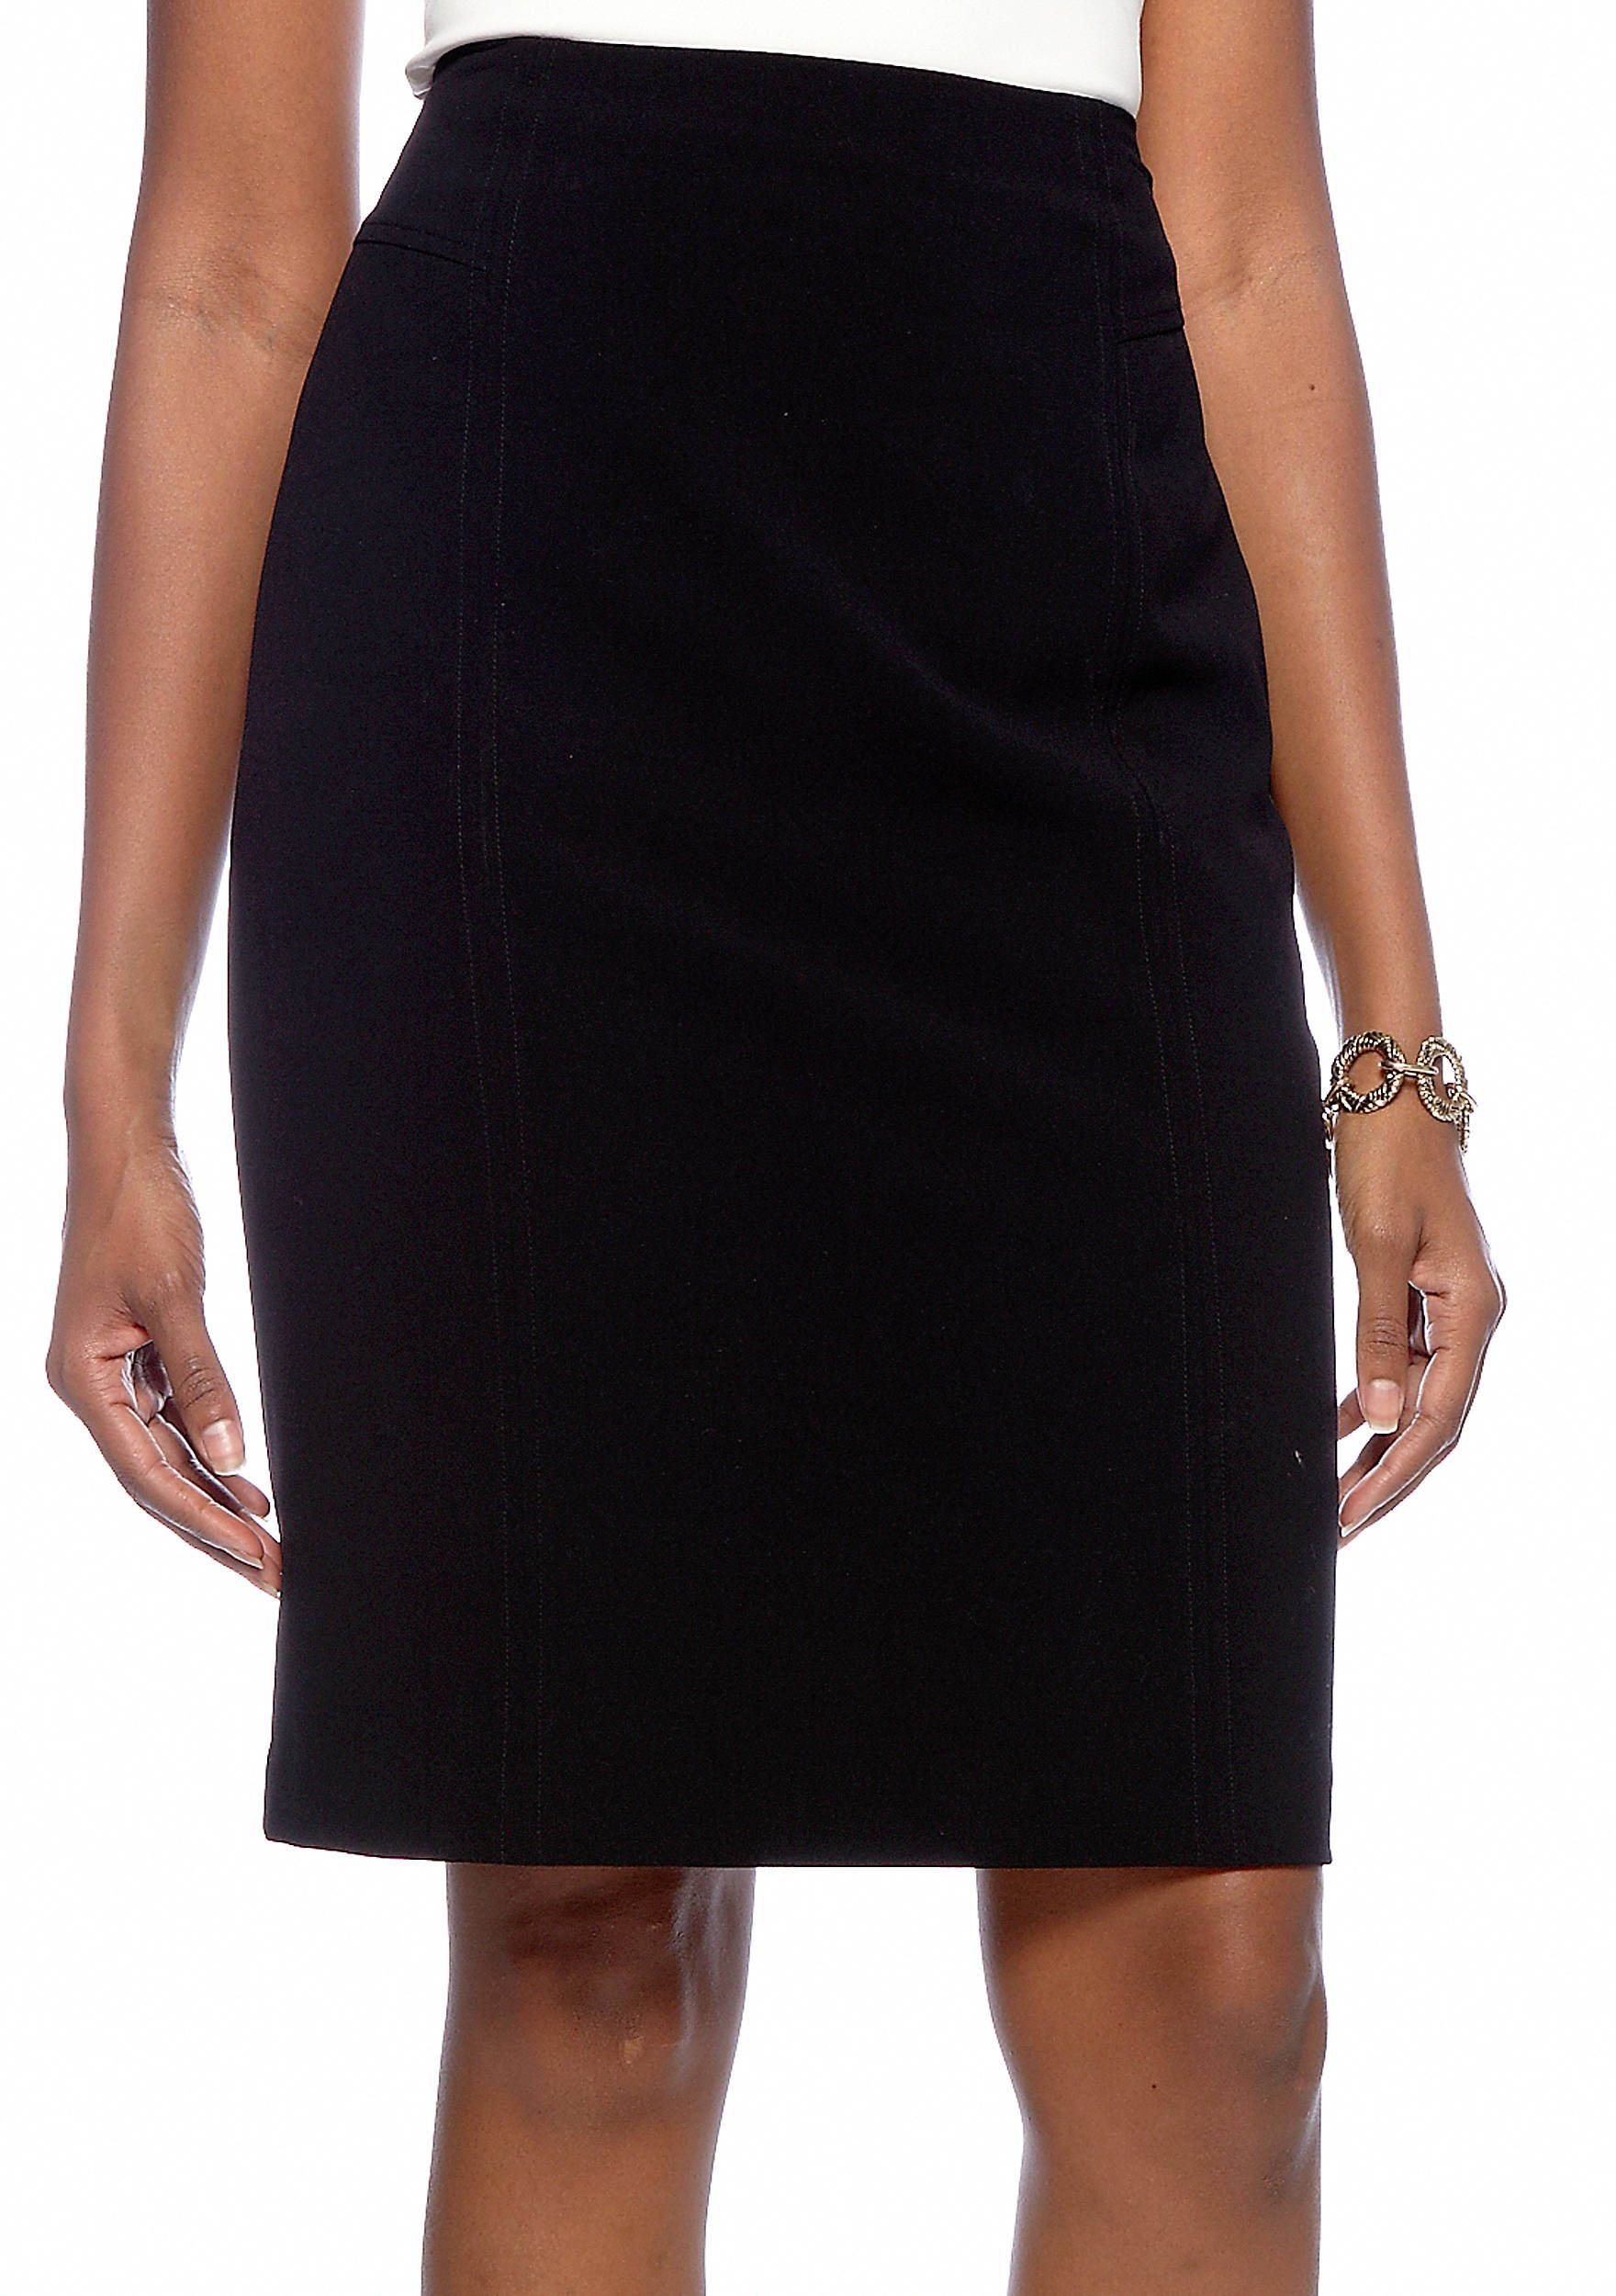 a0d607ec1d This classically designed knee-length skirt features a straight silhouette,  front seams, back darts, and a 7-in. back slit. It is easy to wear and will  keep ...